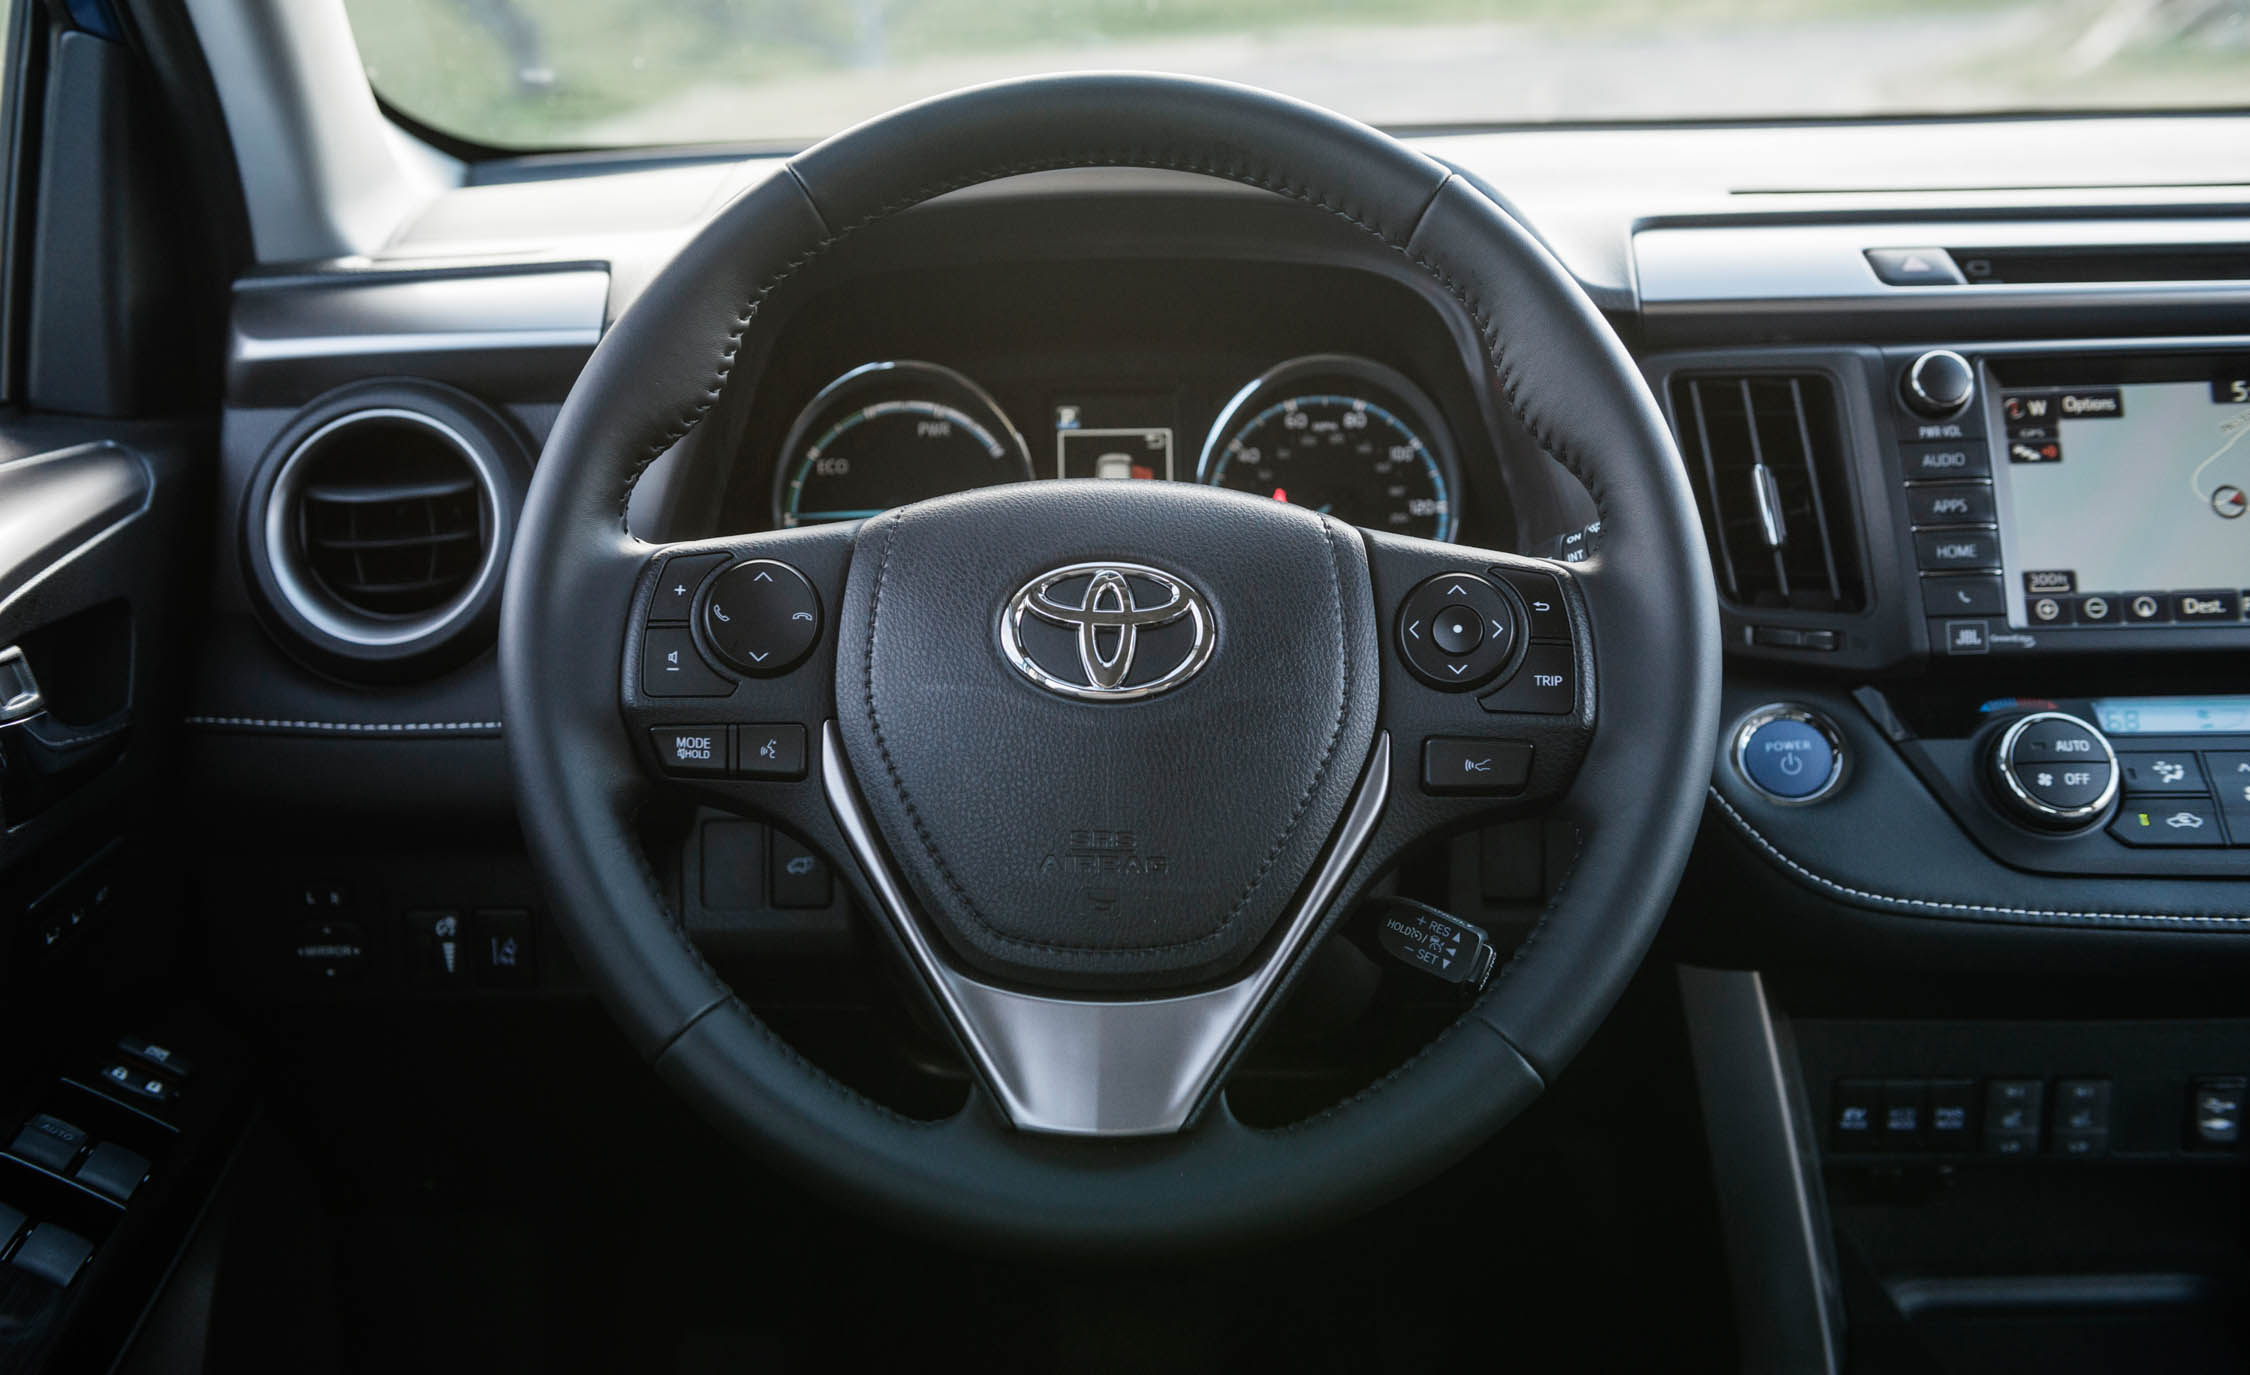 2016 Toyota Rav4 Hybrid Interior Steering (Photo 22 of 26)